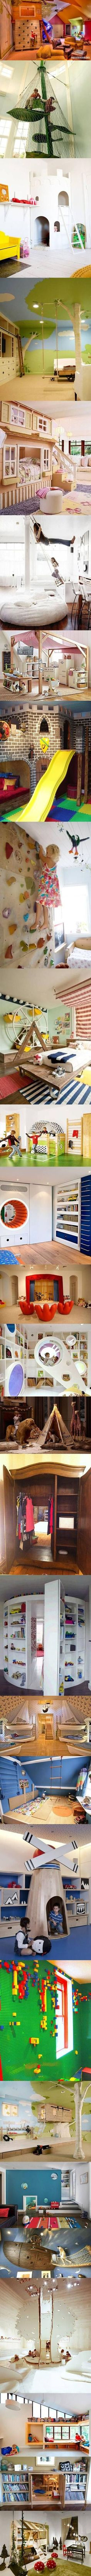 Fun kids spaces